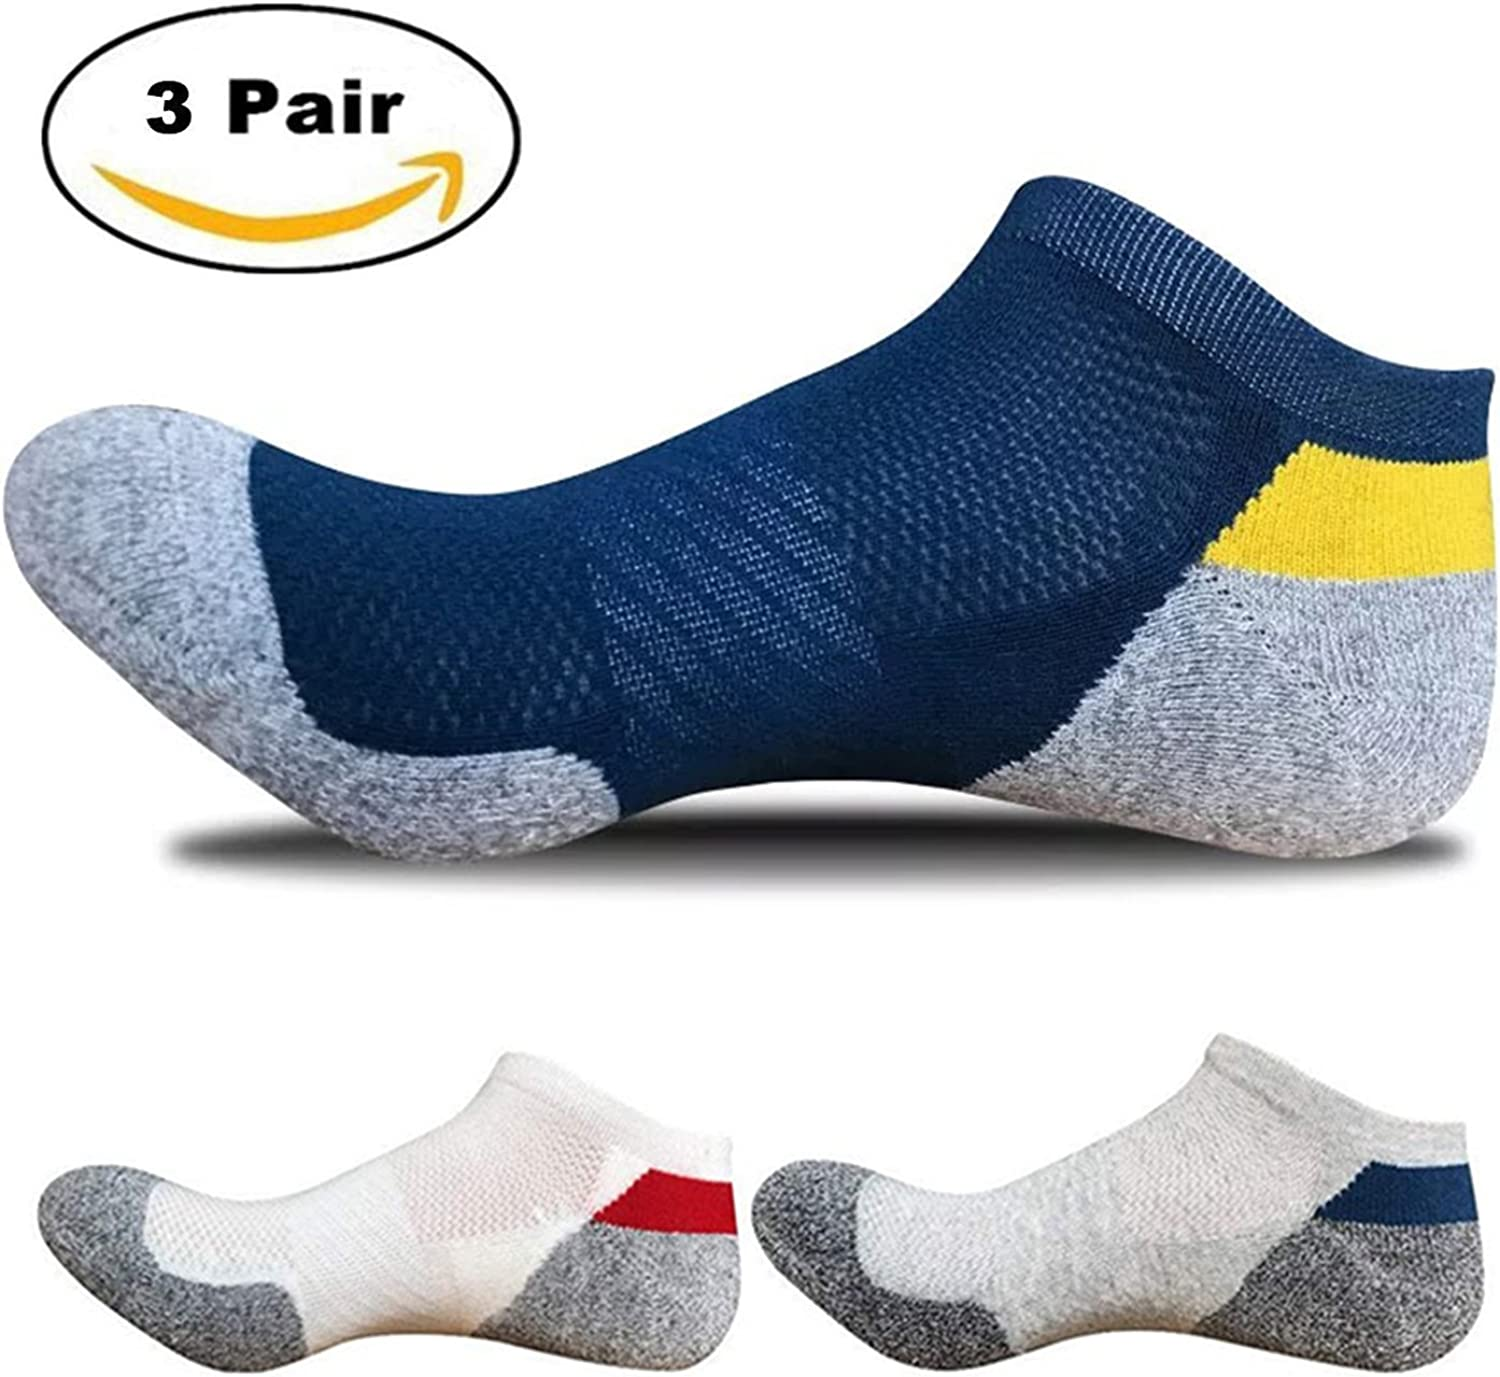 5 Pairs Mens Anklet Socks No Blister Terry Cushioned Breathable Moisture Wicking Athletic Socks for Hiking Running Cycling